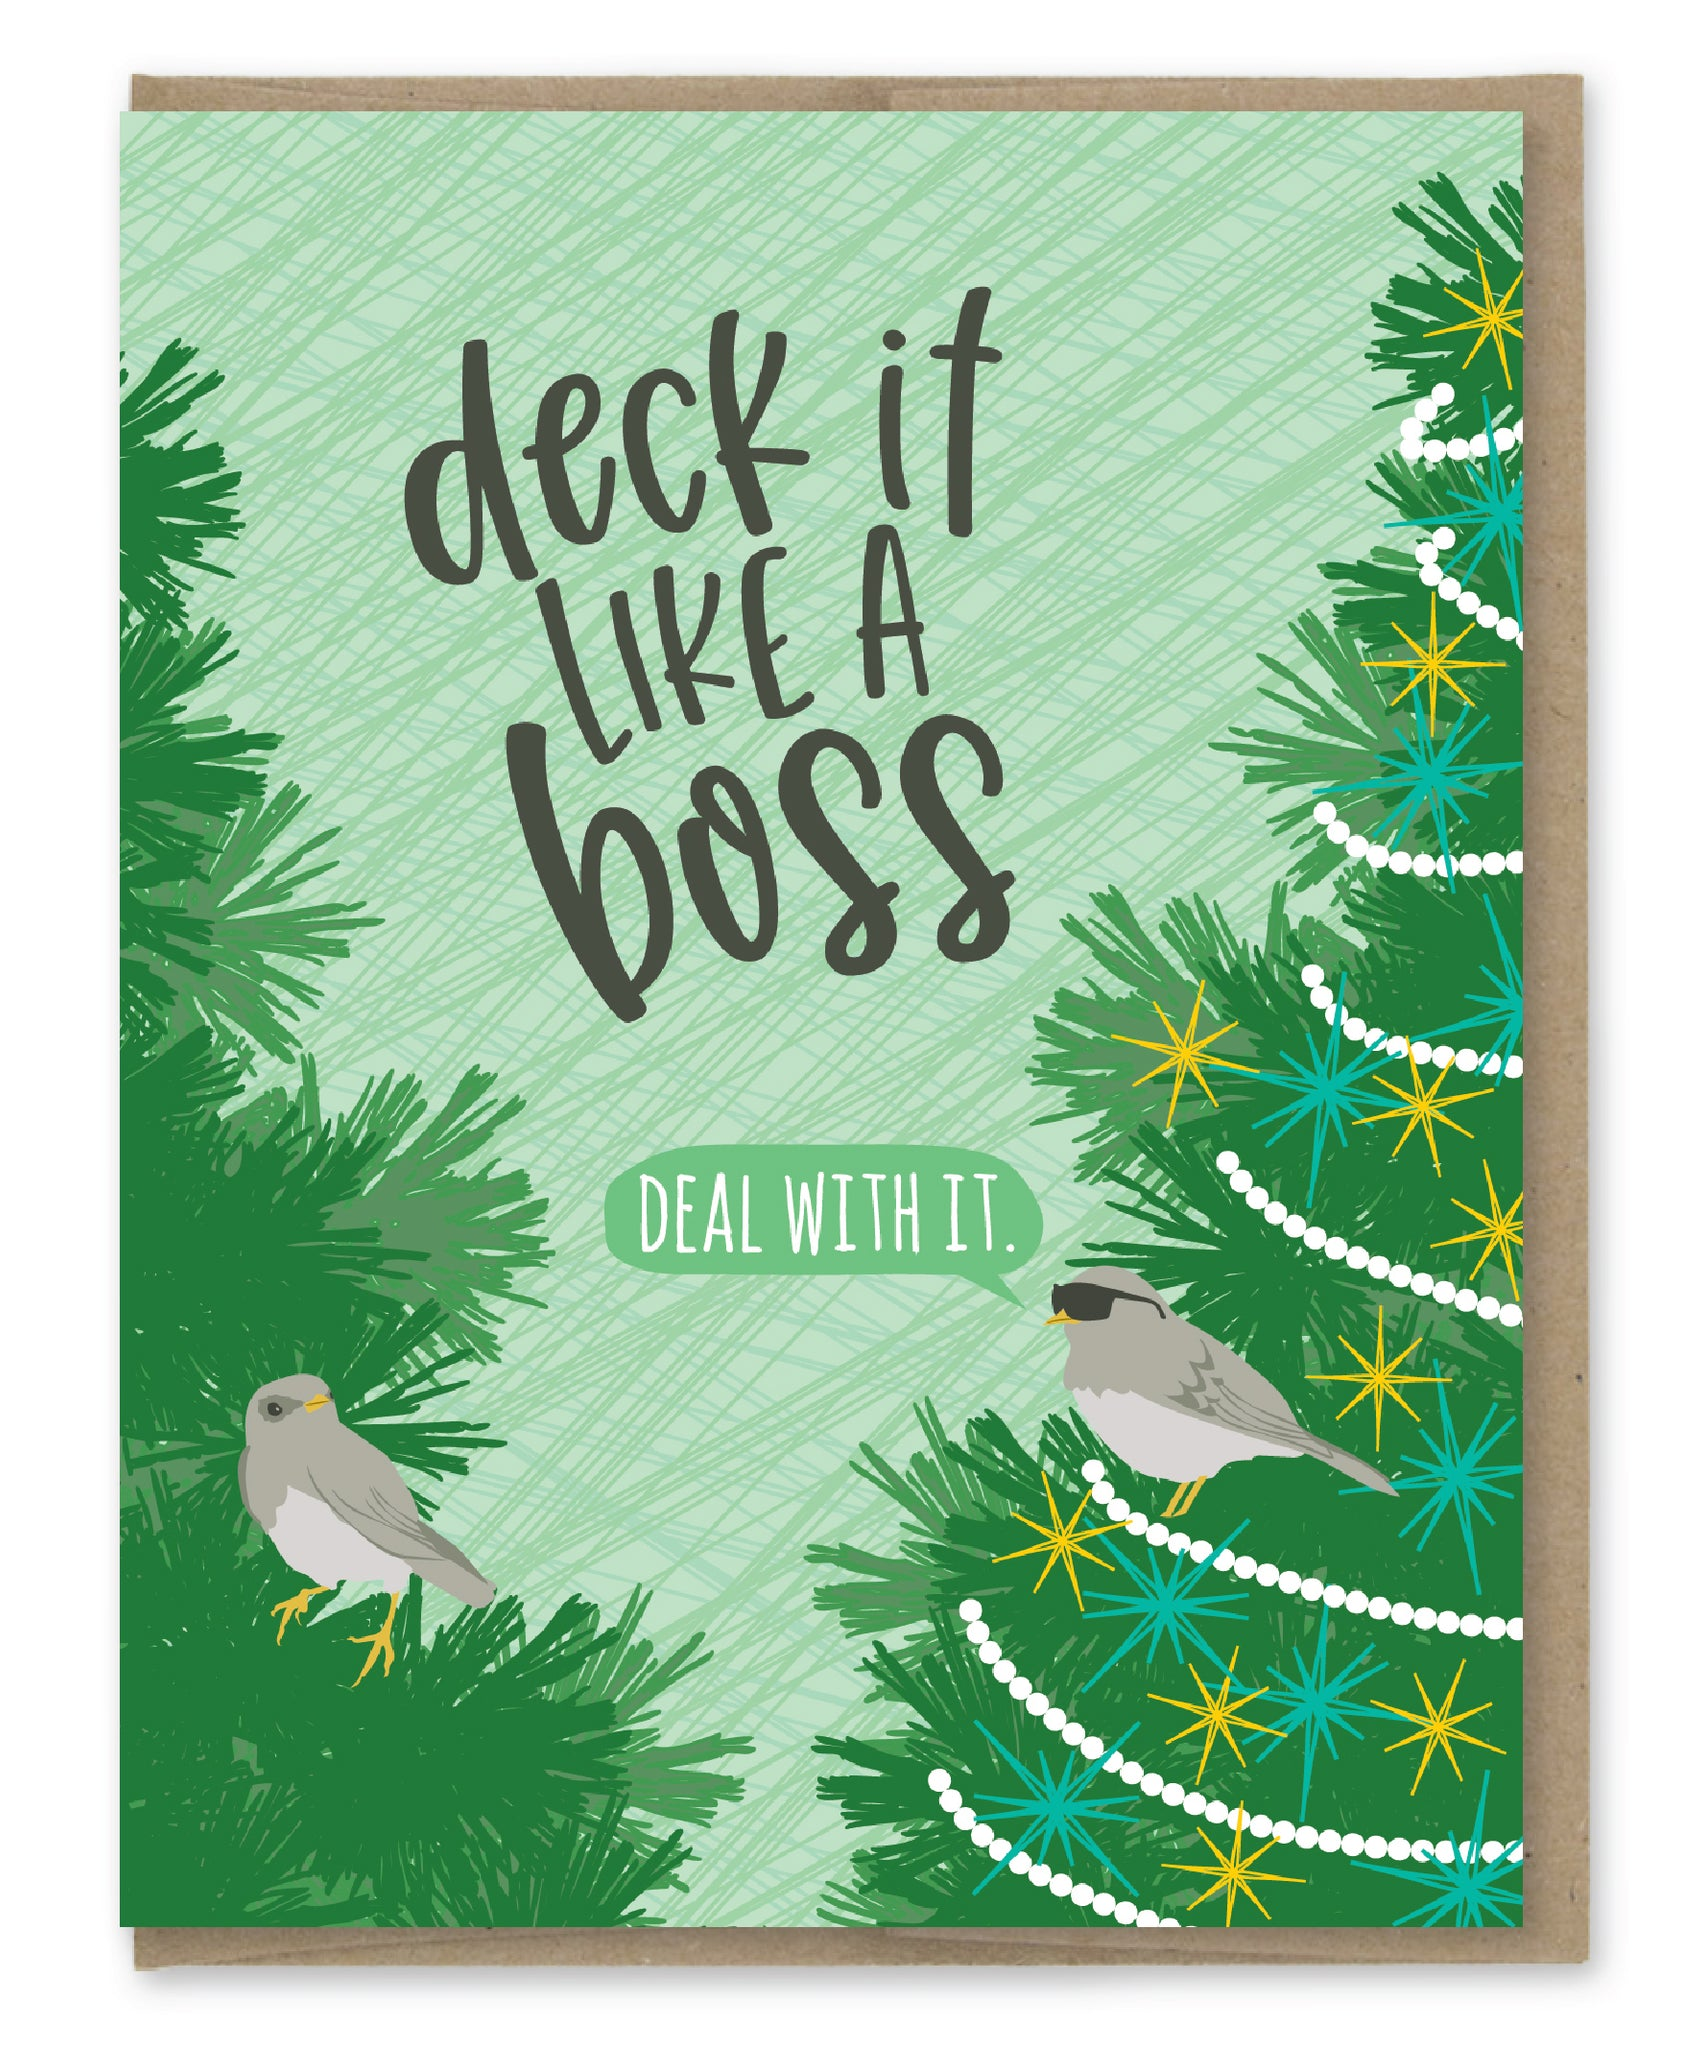 DECK IT HOLIDAY CARD